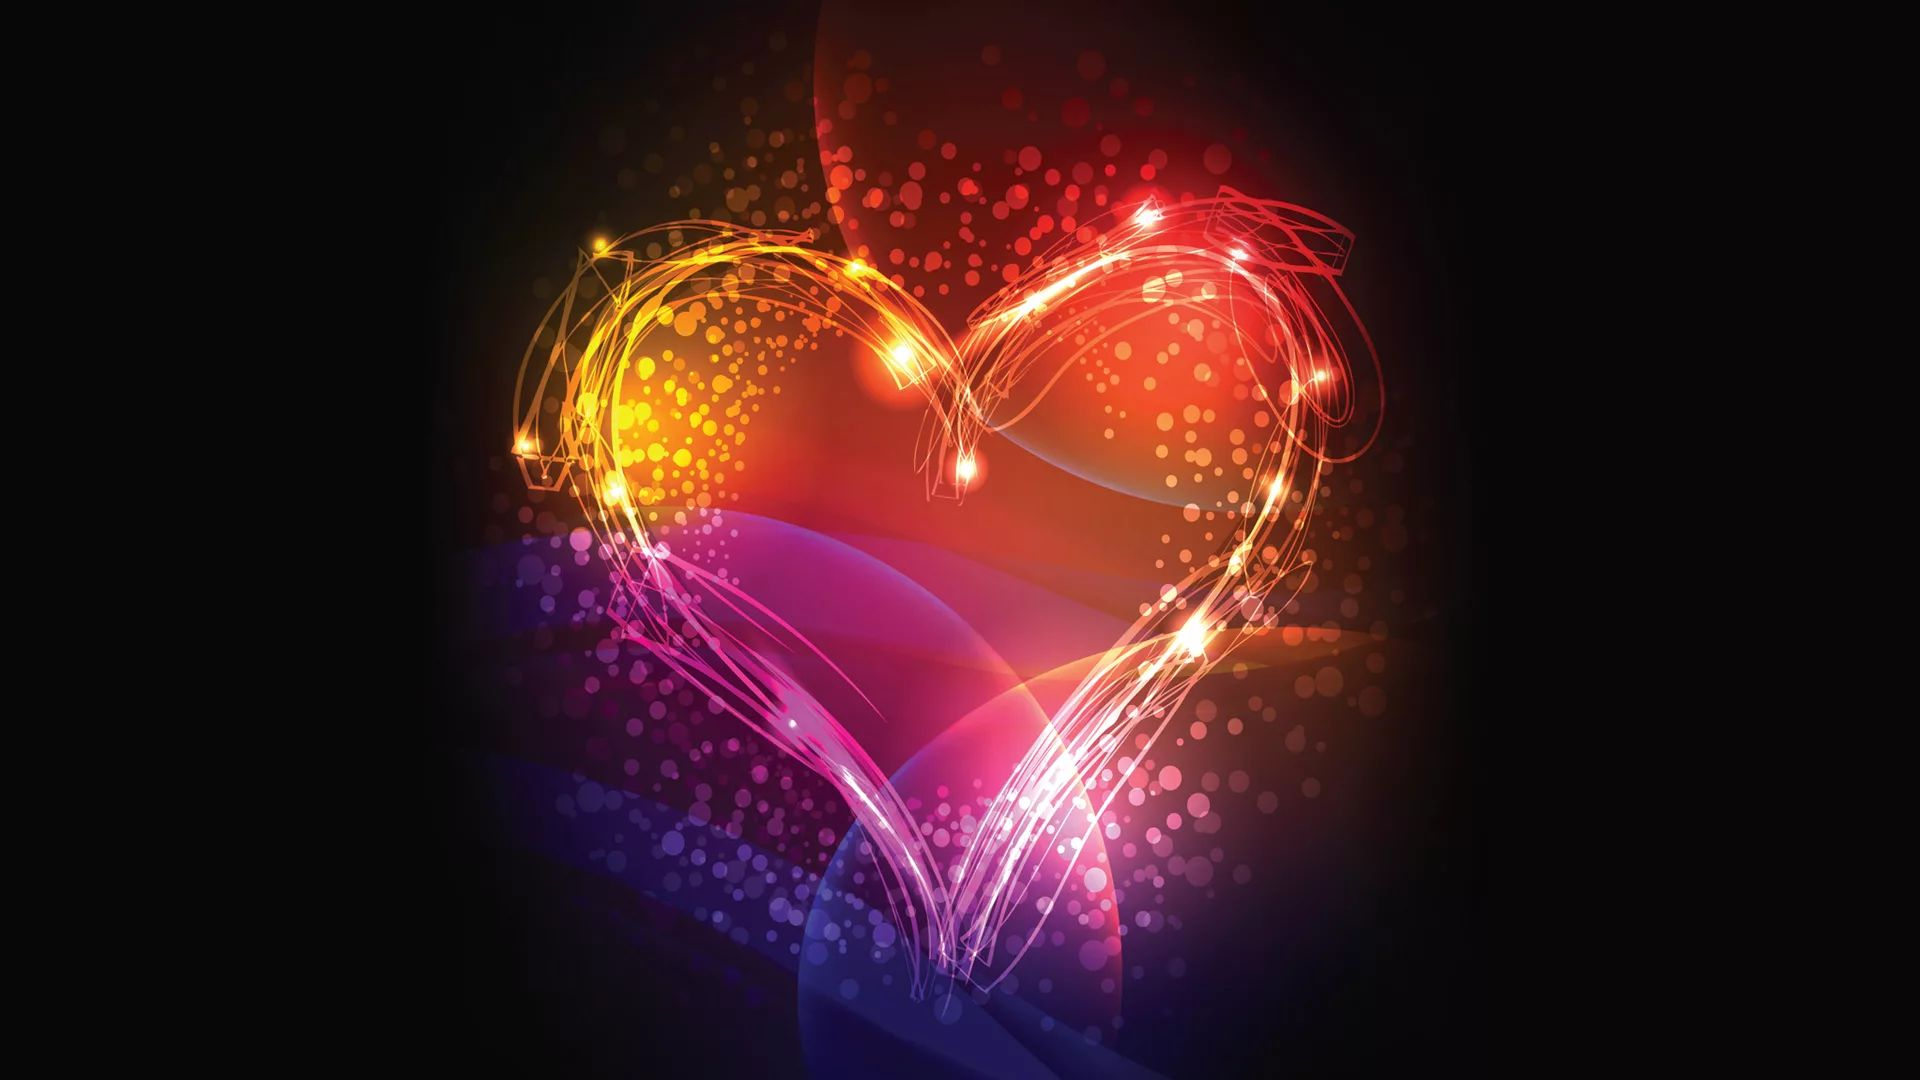 The Neon Hearts Wallpapers And Pictures Free Download